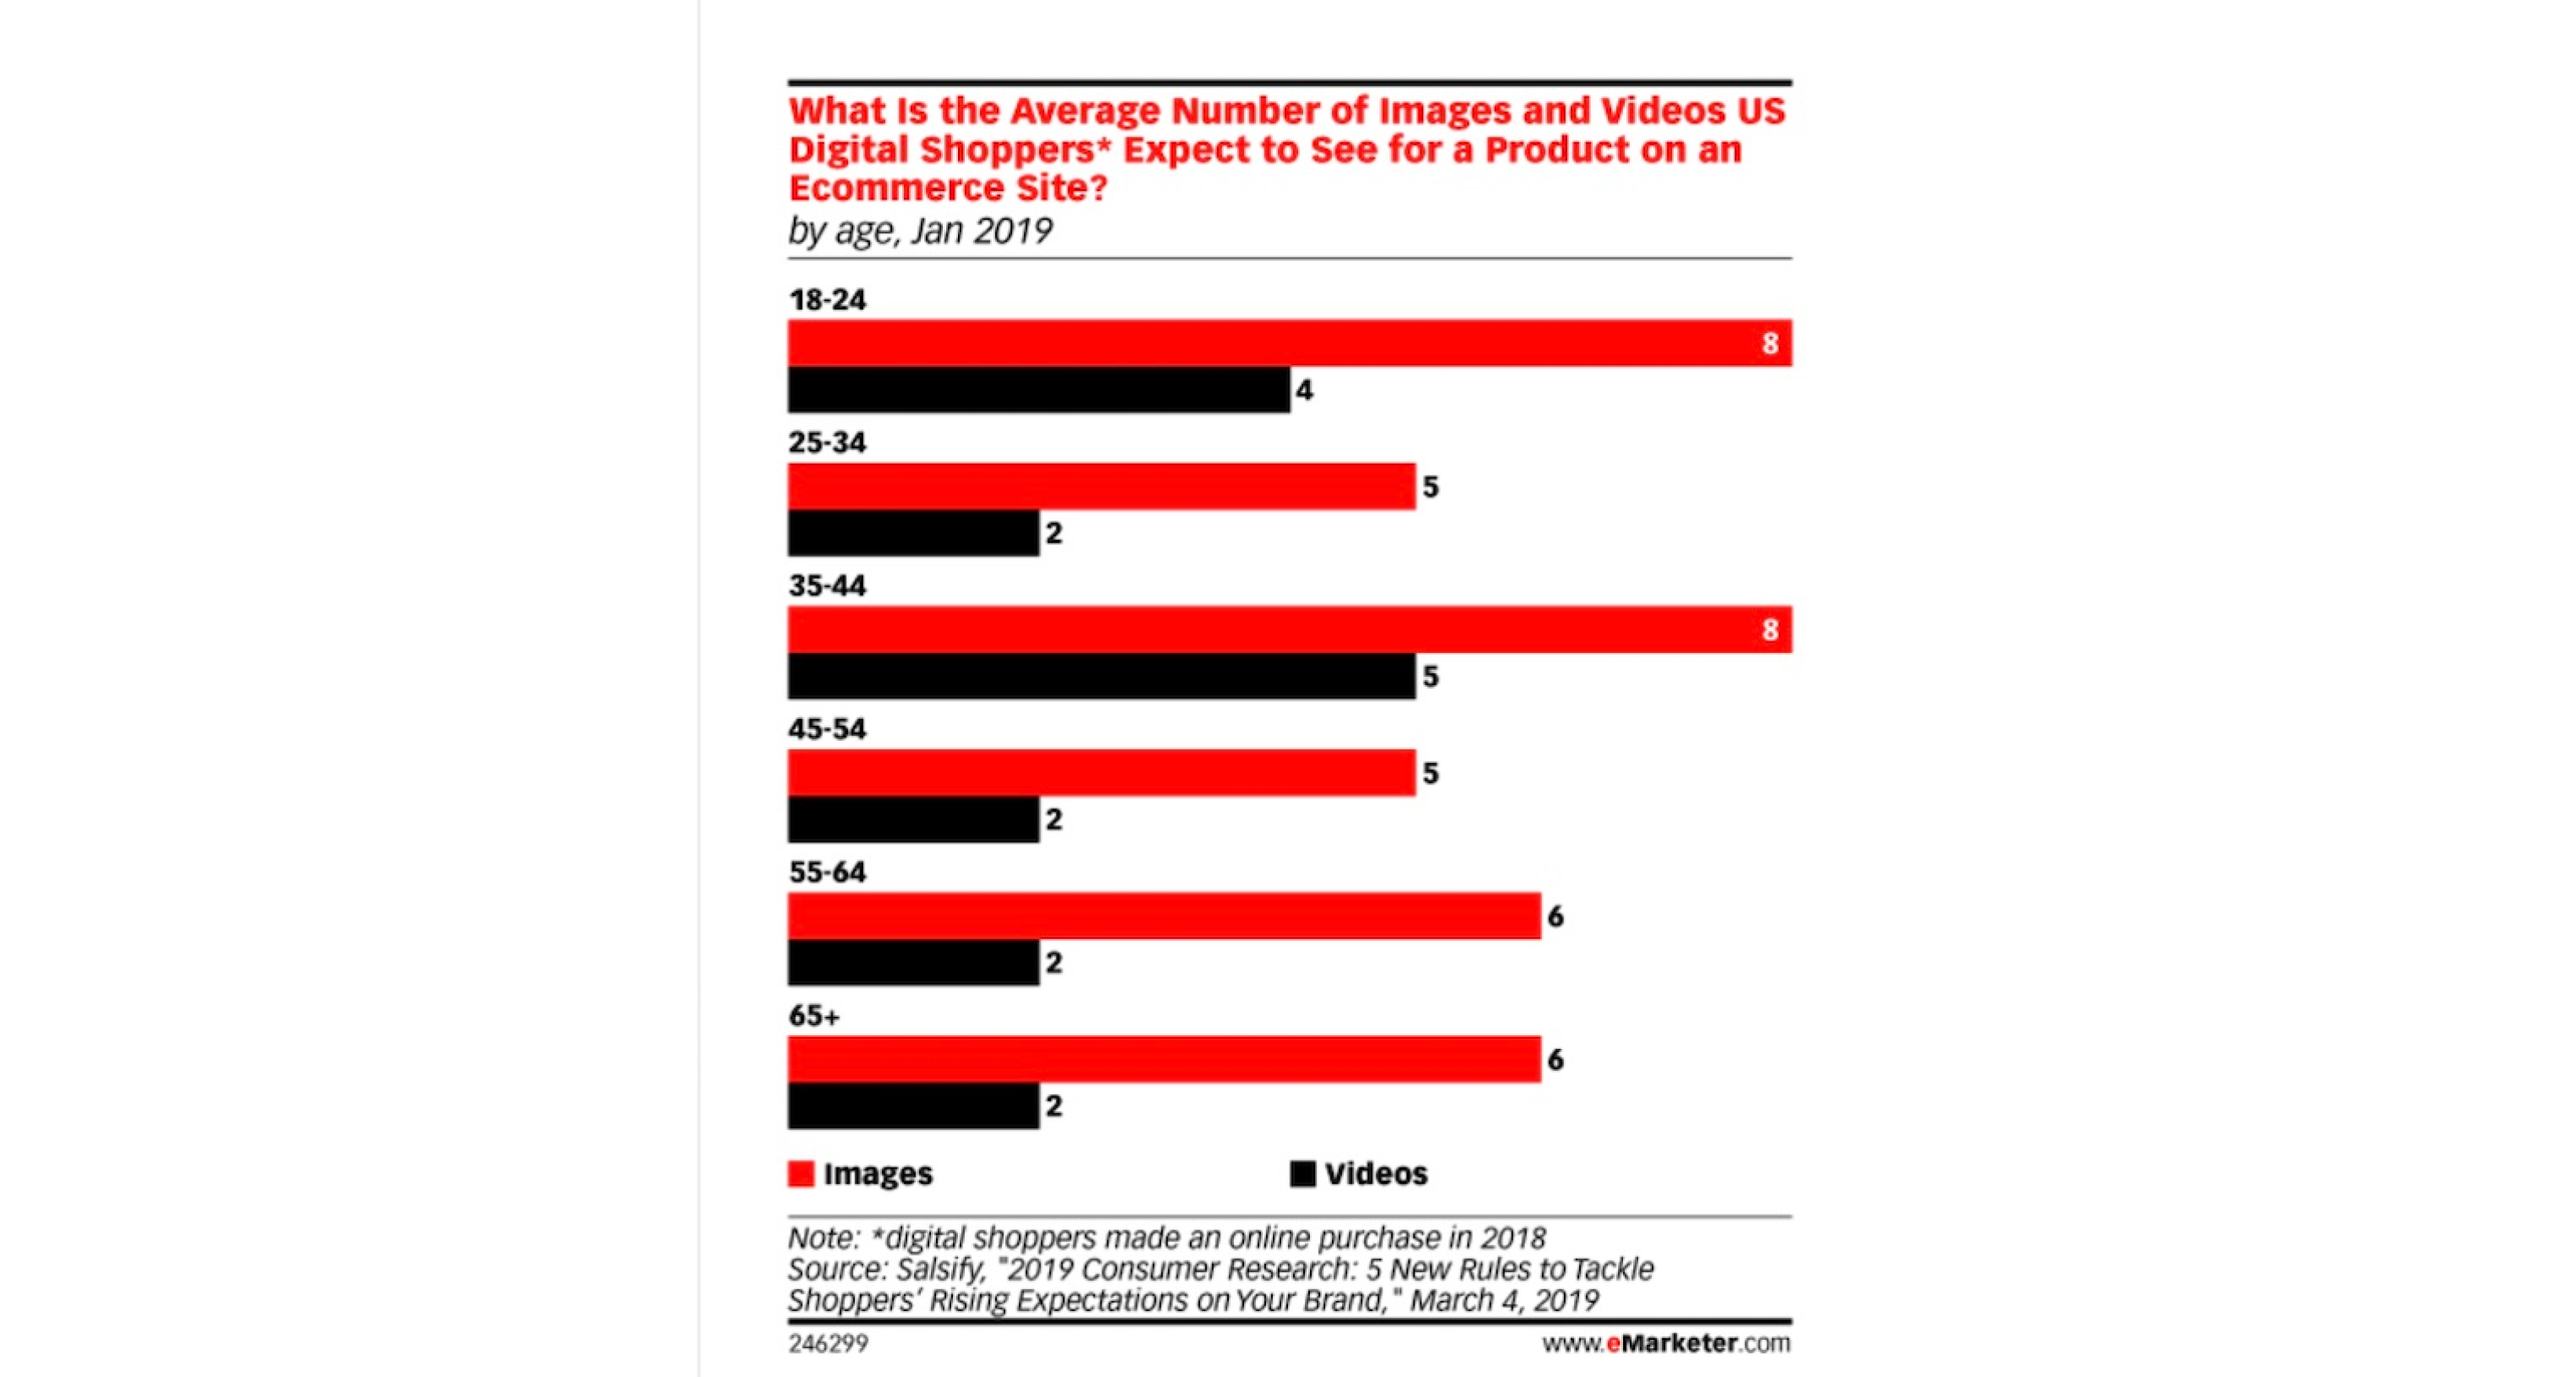 shopify speed optimization emarketer survey result about demanding for video